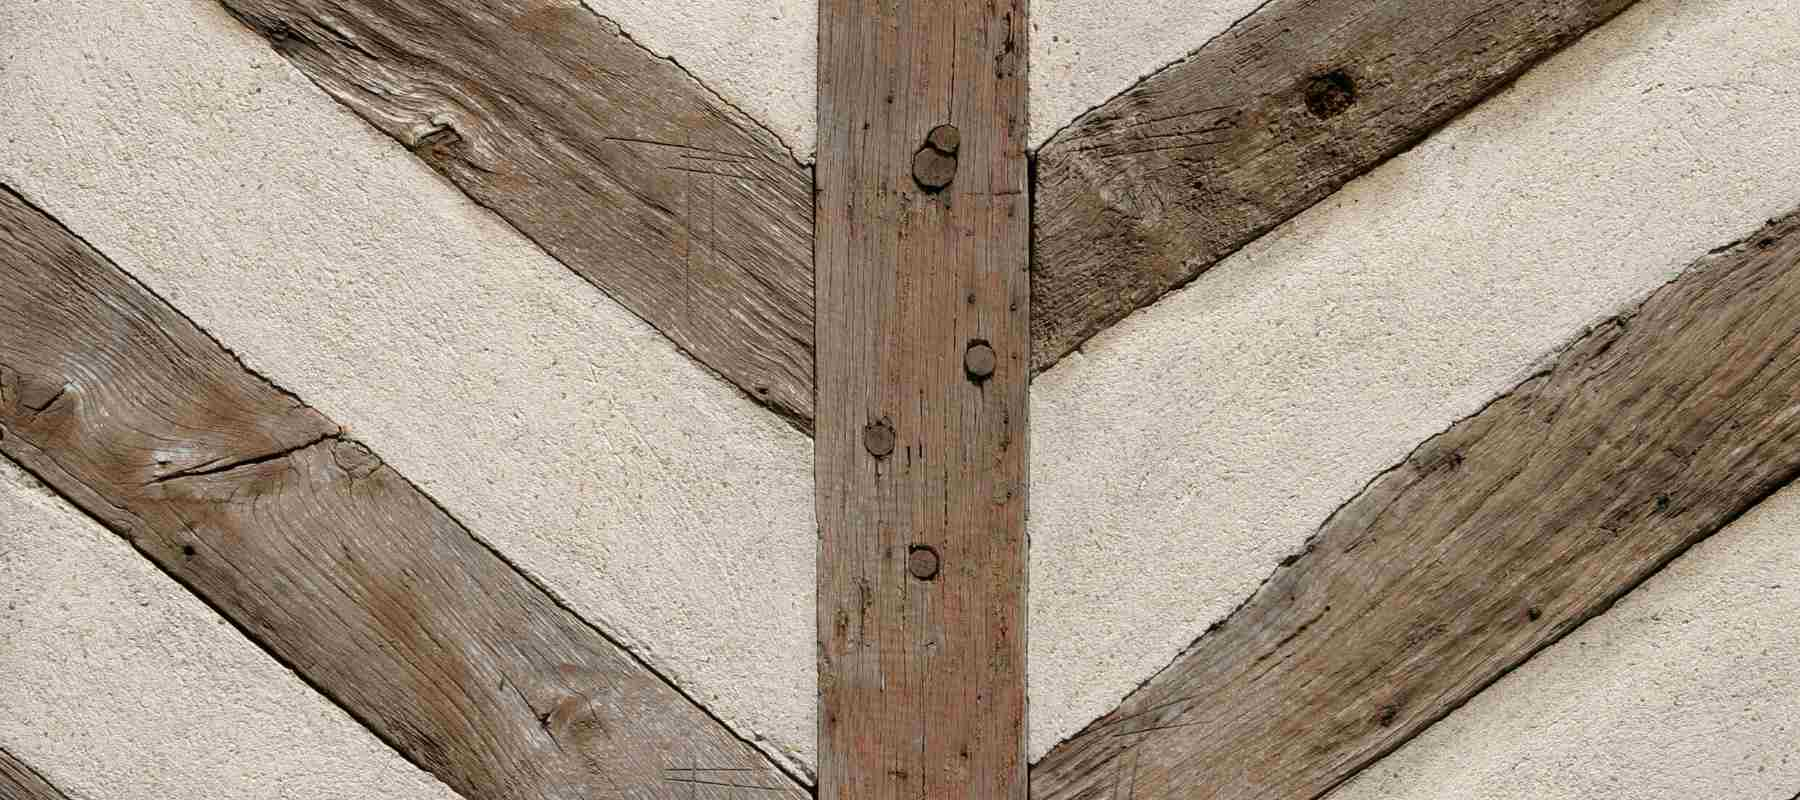 Close up of wooden beams